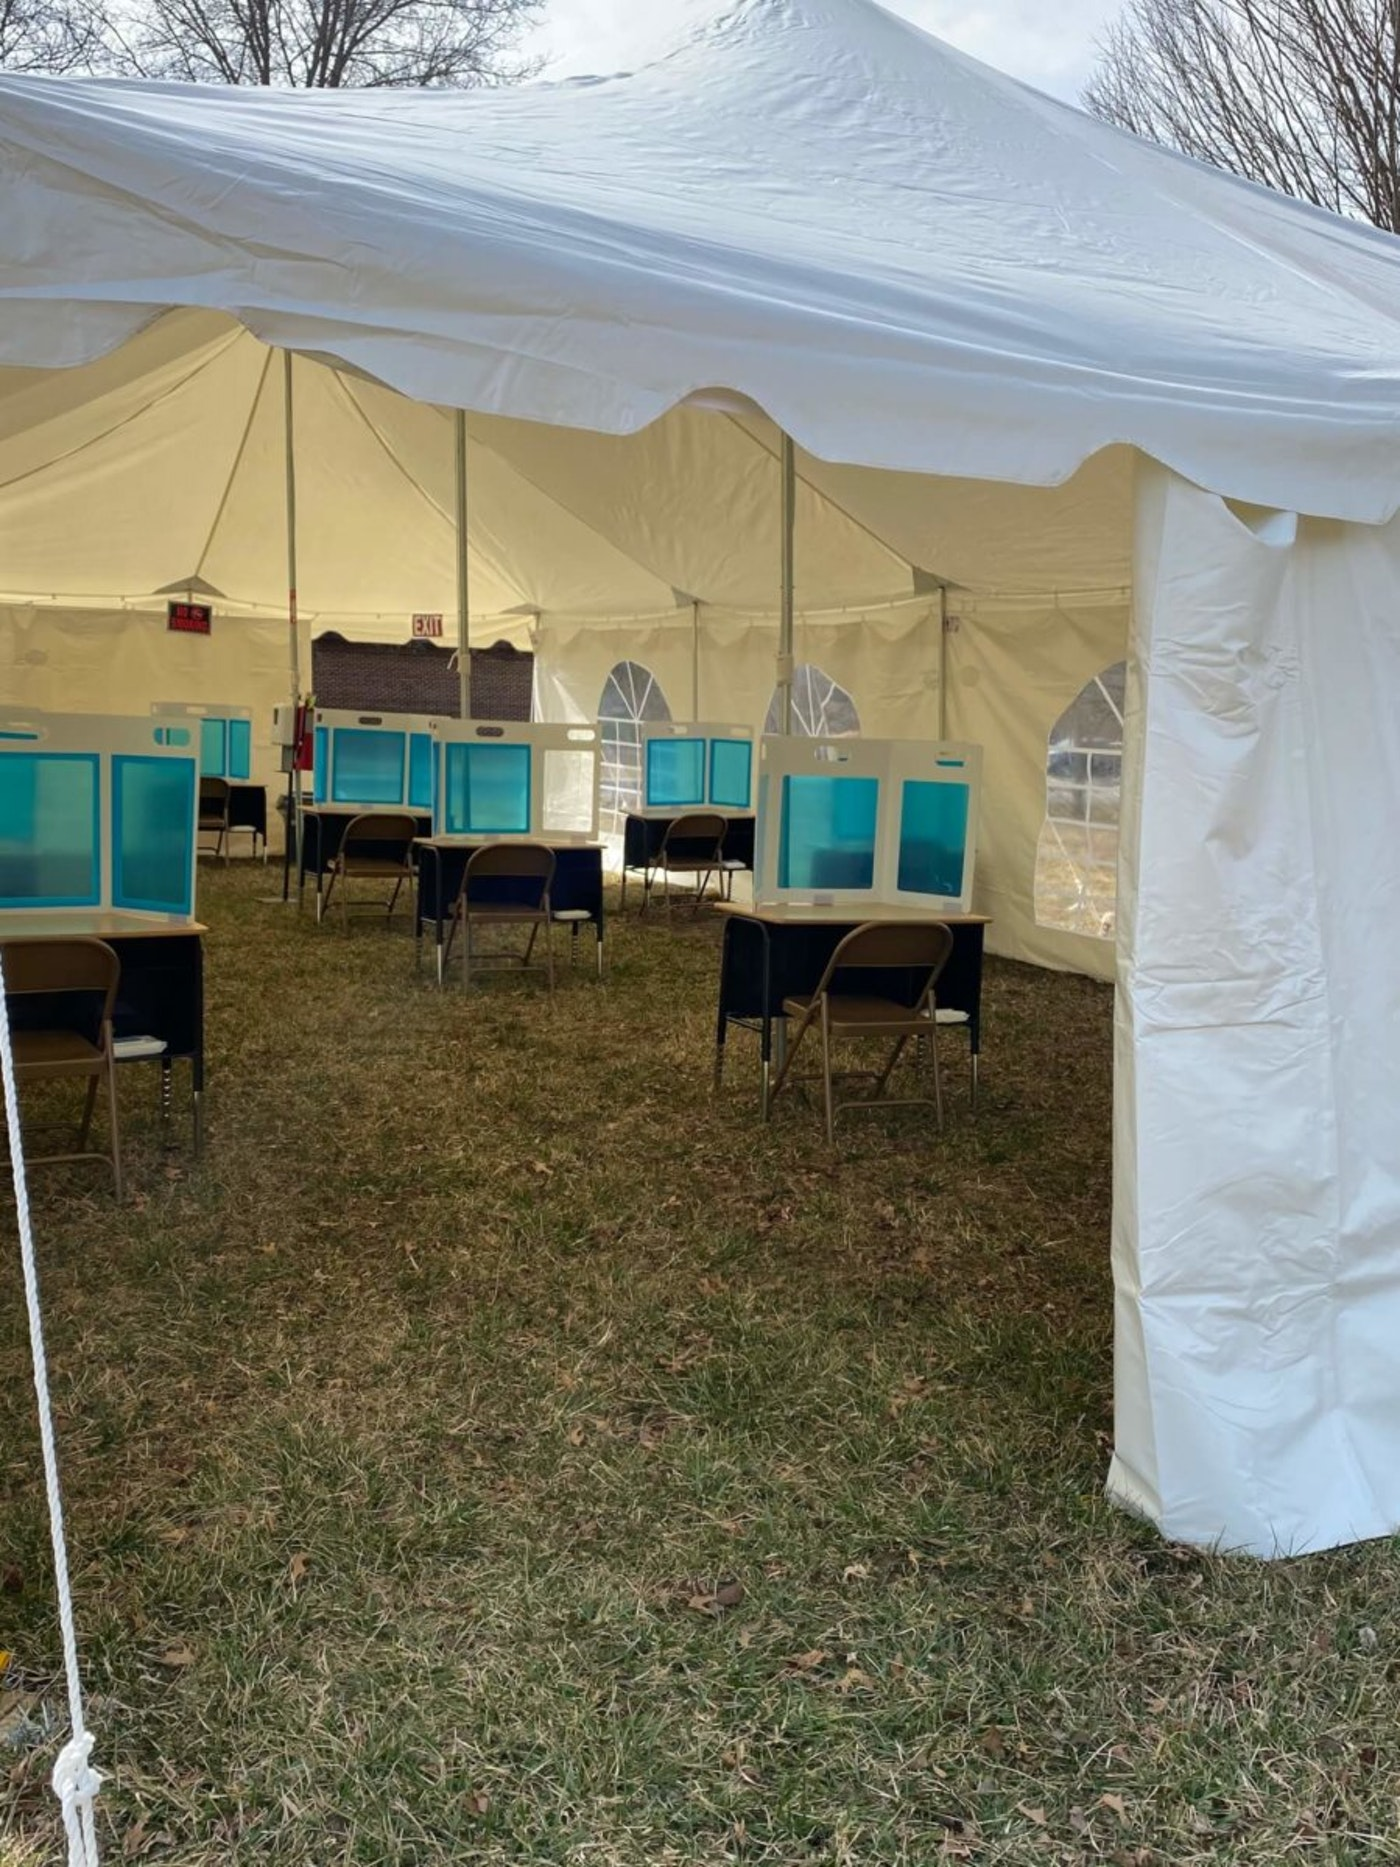 A look at some of the tent facilities used as virus mitigation methods by Montgomery County Schools.